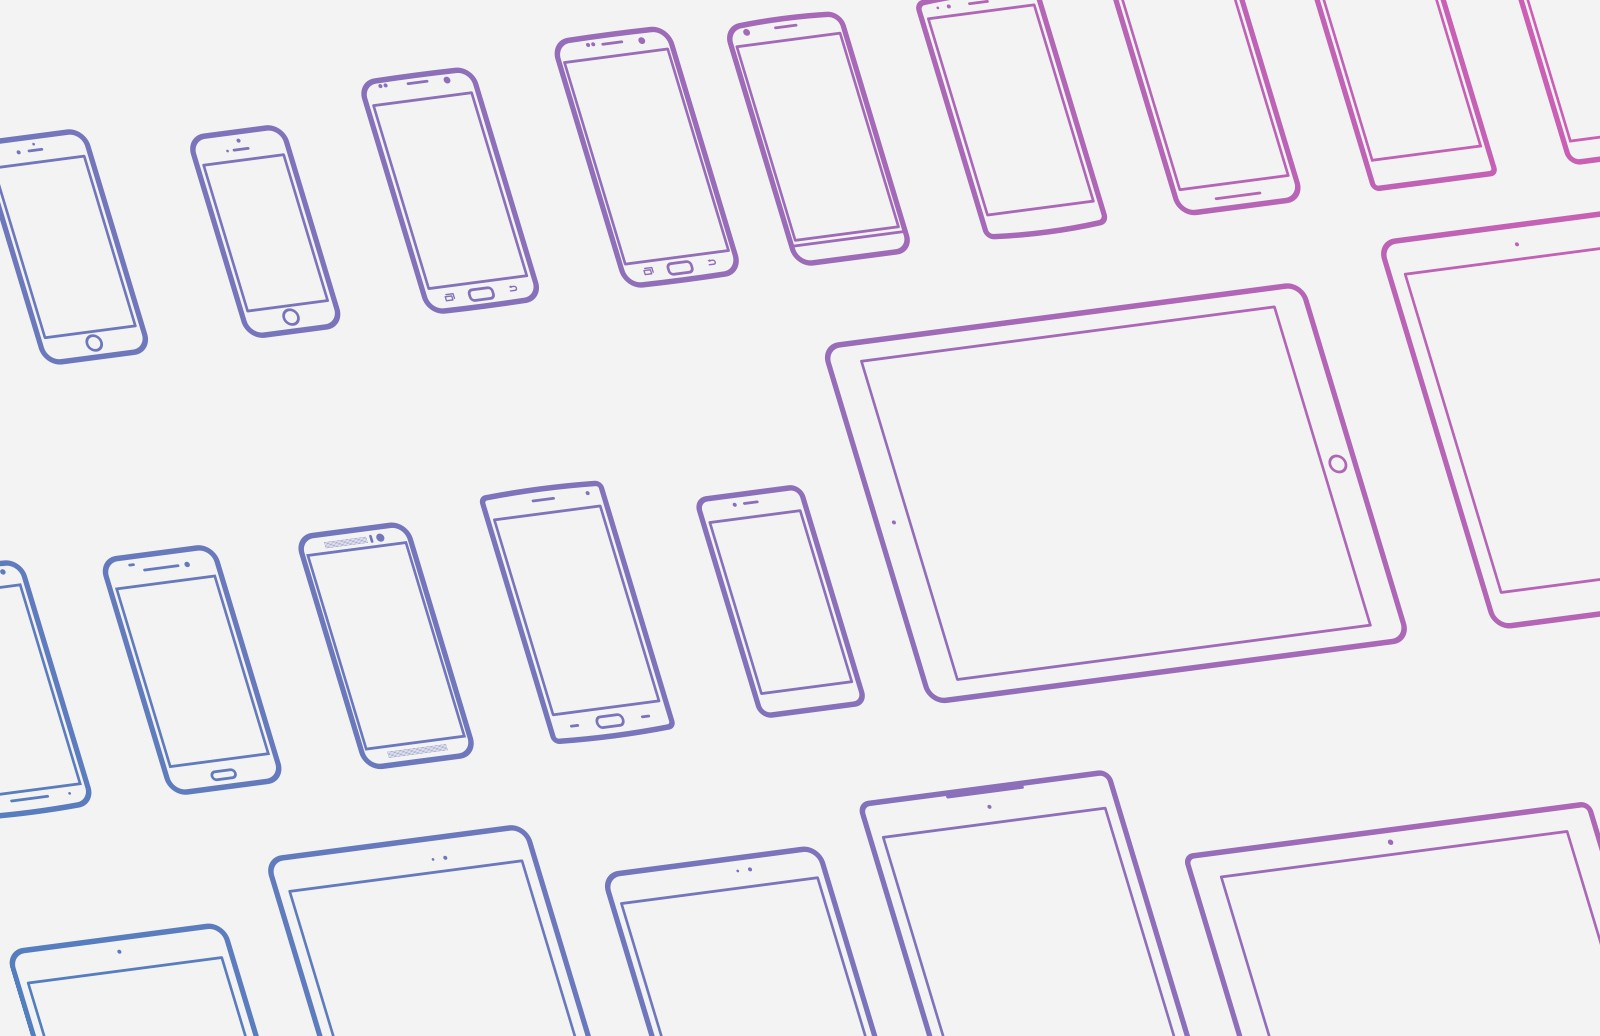 Mobile Device Vector Icons (New Devices)